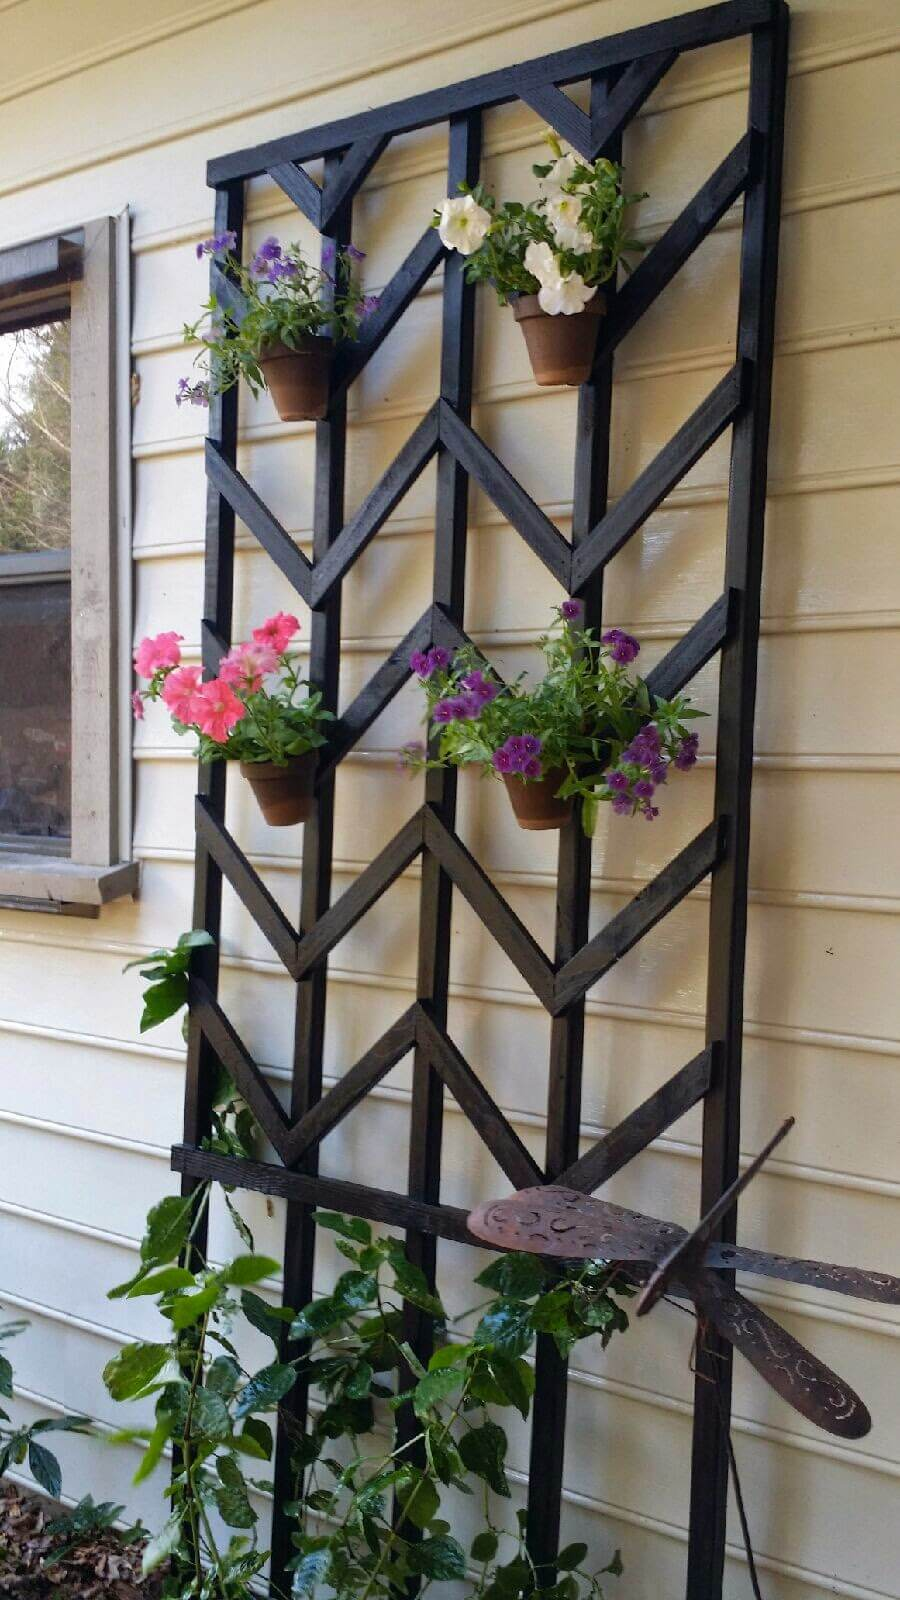 Chevron Lattice with Hanging Planters